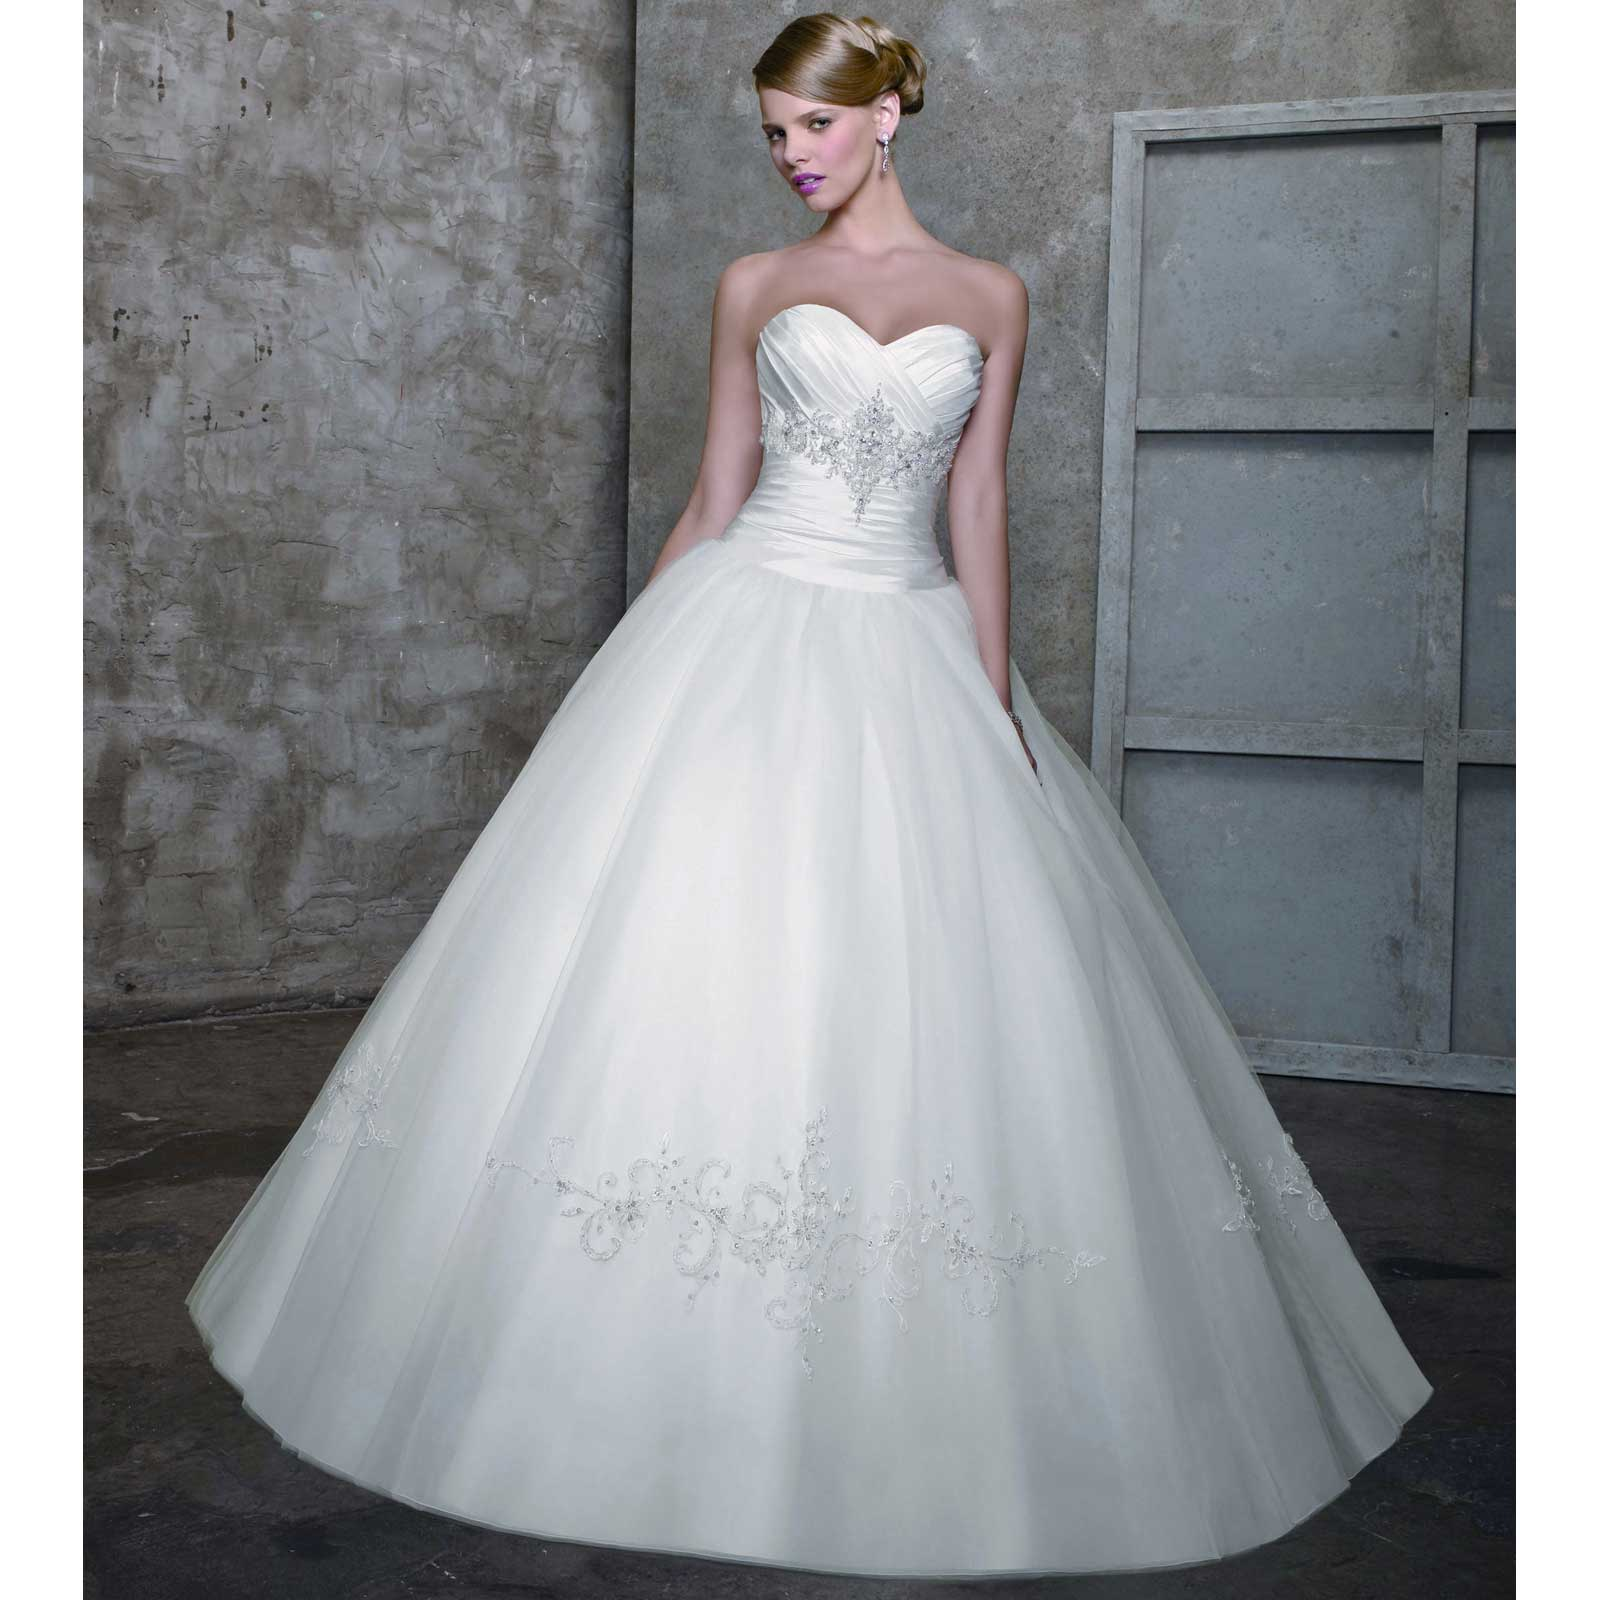 Princess Wedding Gowns: The Bridal House: Wedding Gowns 101: Bridal Ball Gowns